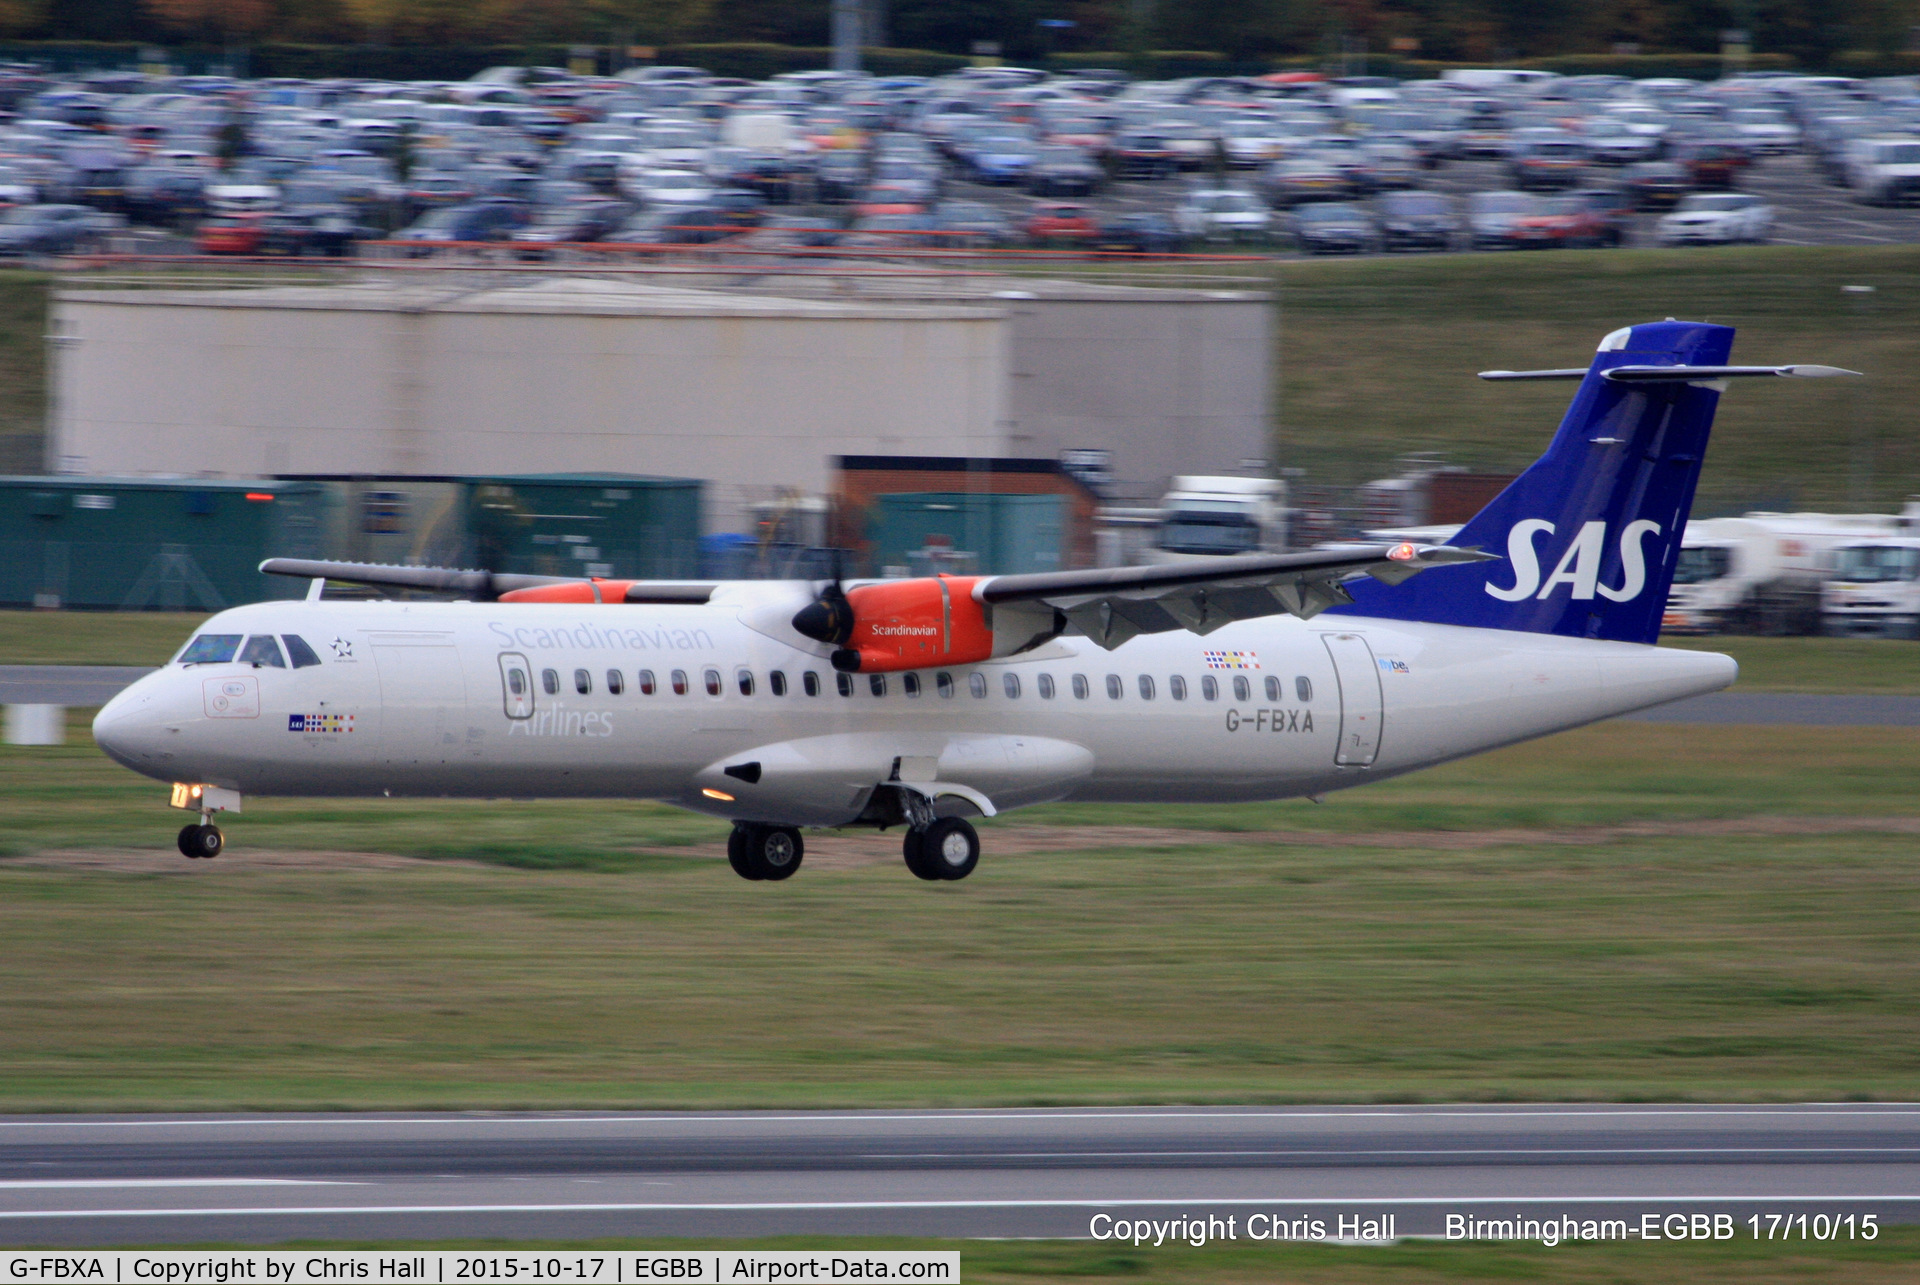 G-FBXA, 2015 ATR 72-212A C/N 1260, operated by flybe on behalf of SAS